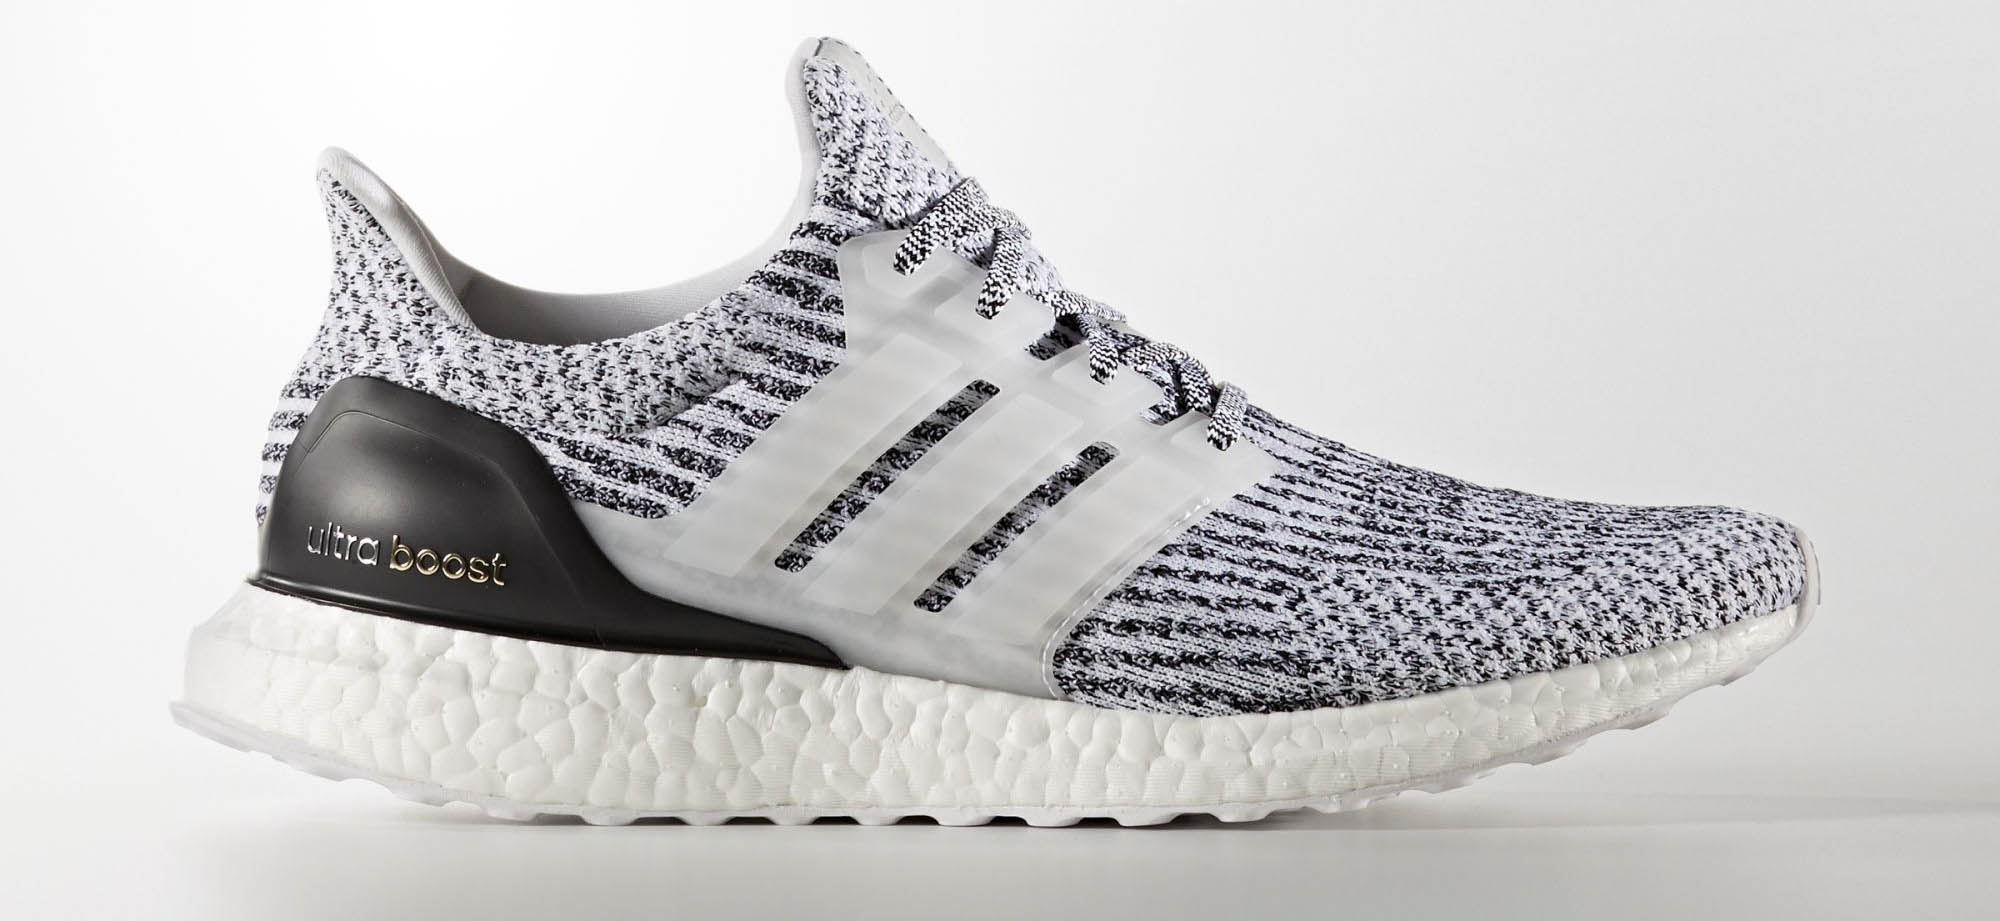 333075327aa8c The adidas Ultra Boost 3.0  Oreo  is Available Now - WearTesters